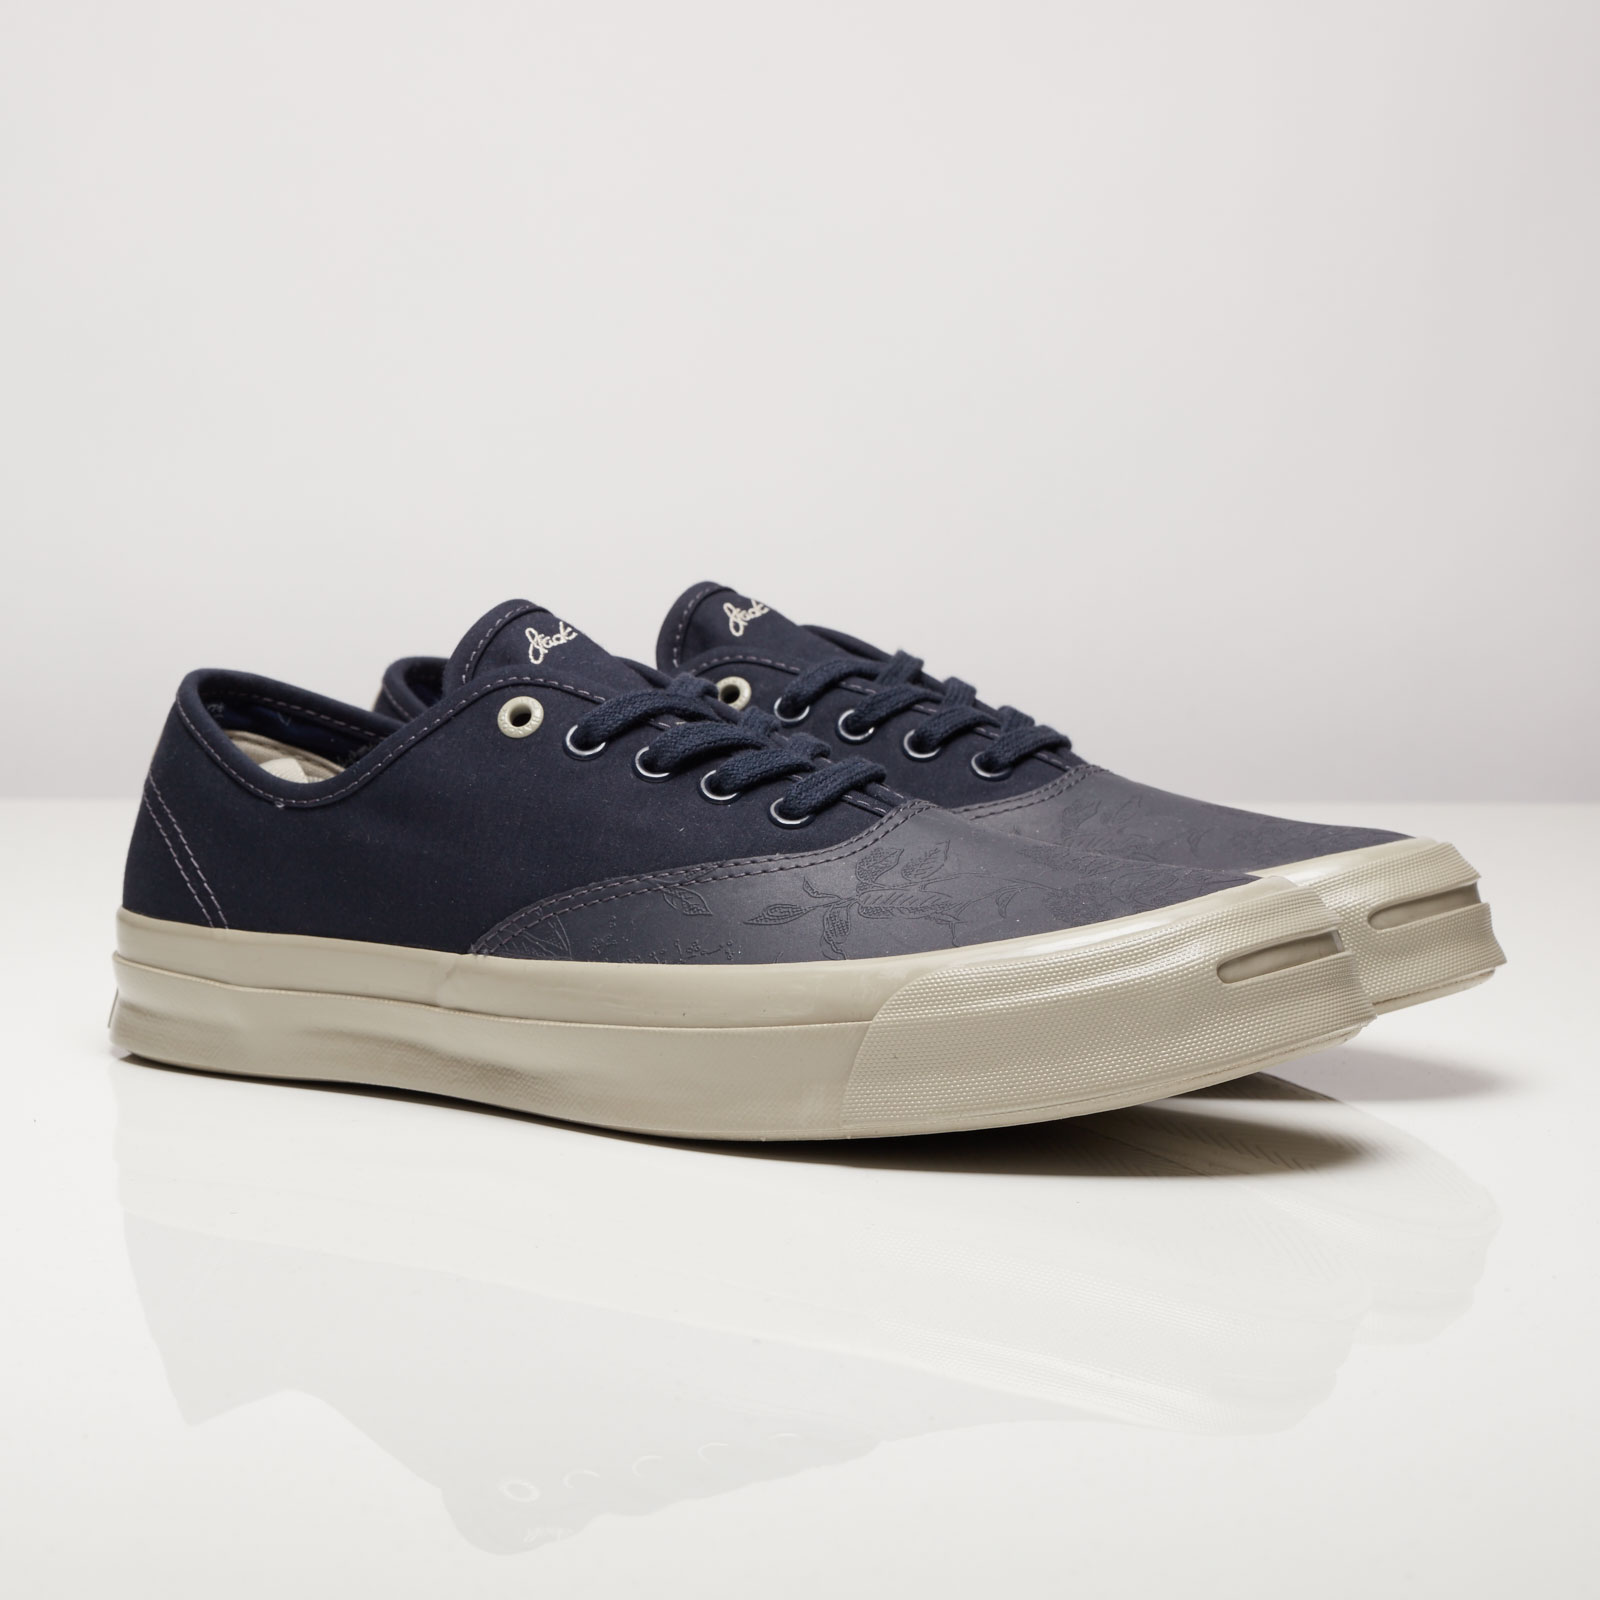 74a8ee9754d262 Converse Jack Purcell Signature CVO Ox - 153066c - Sneakersnstuff ...